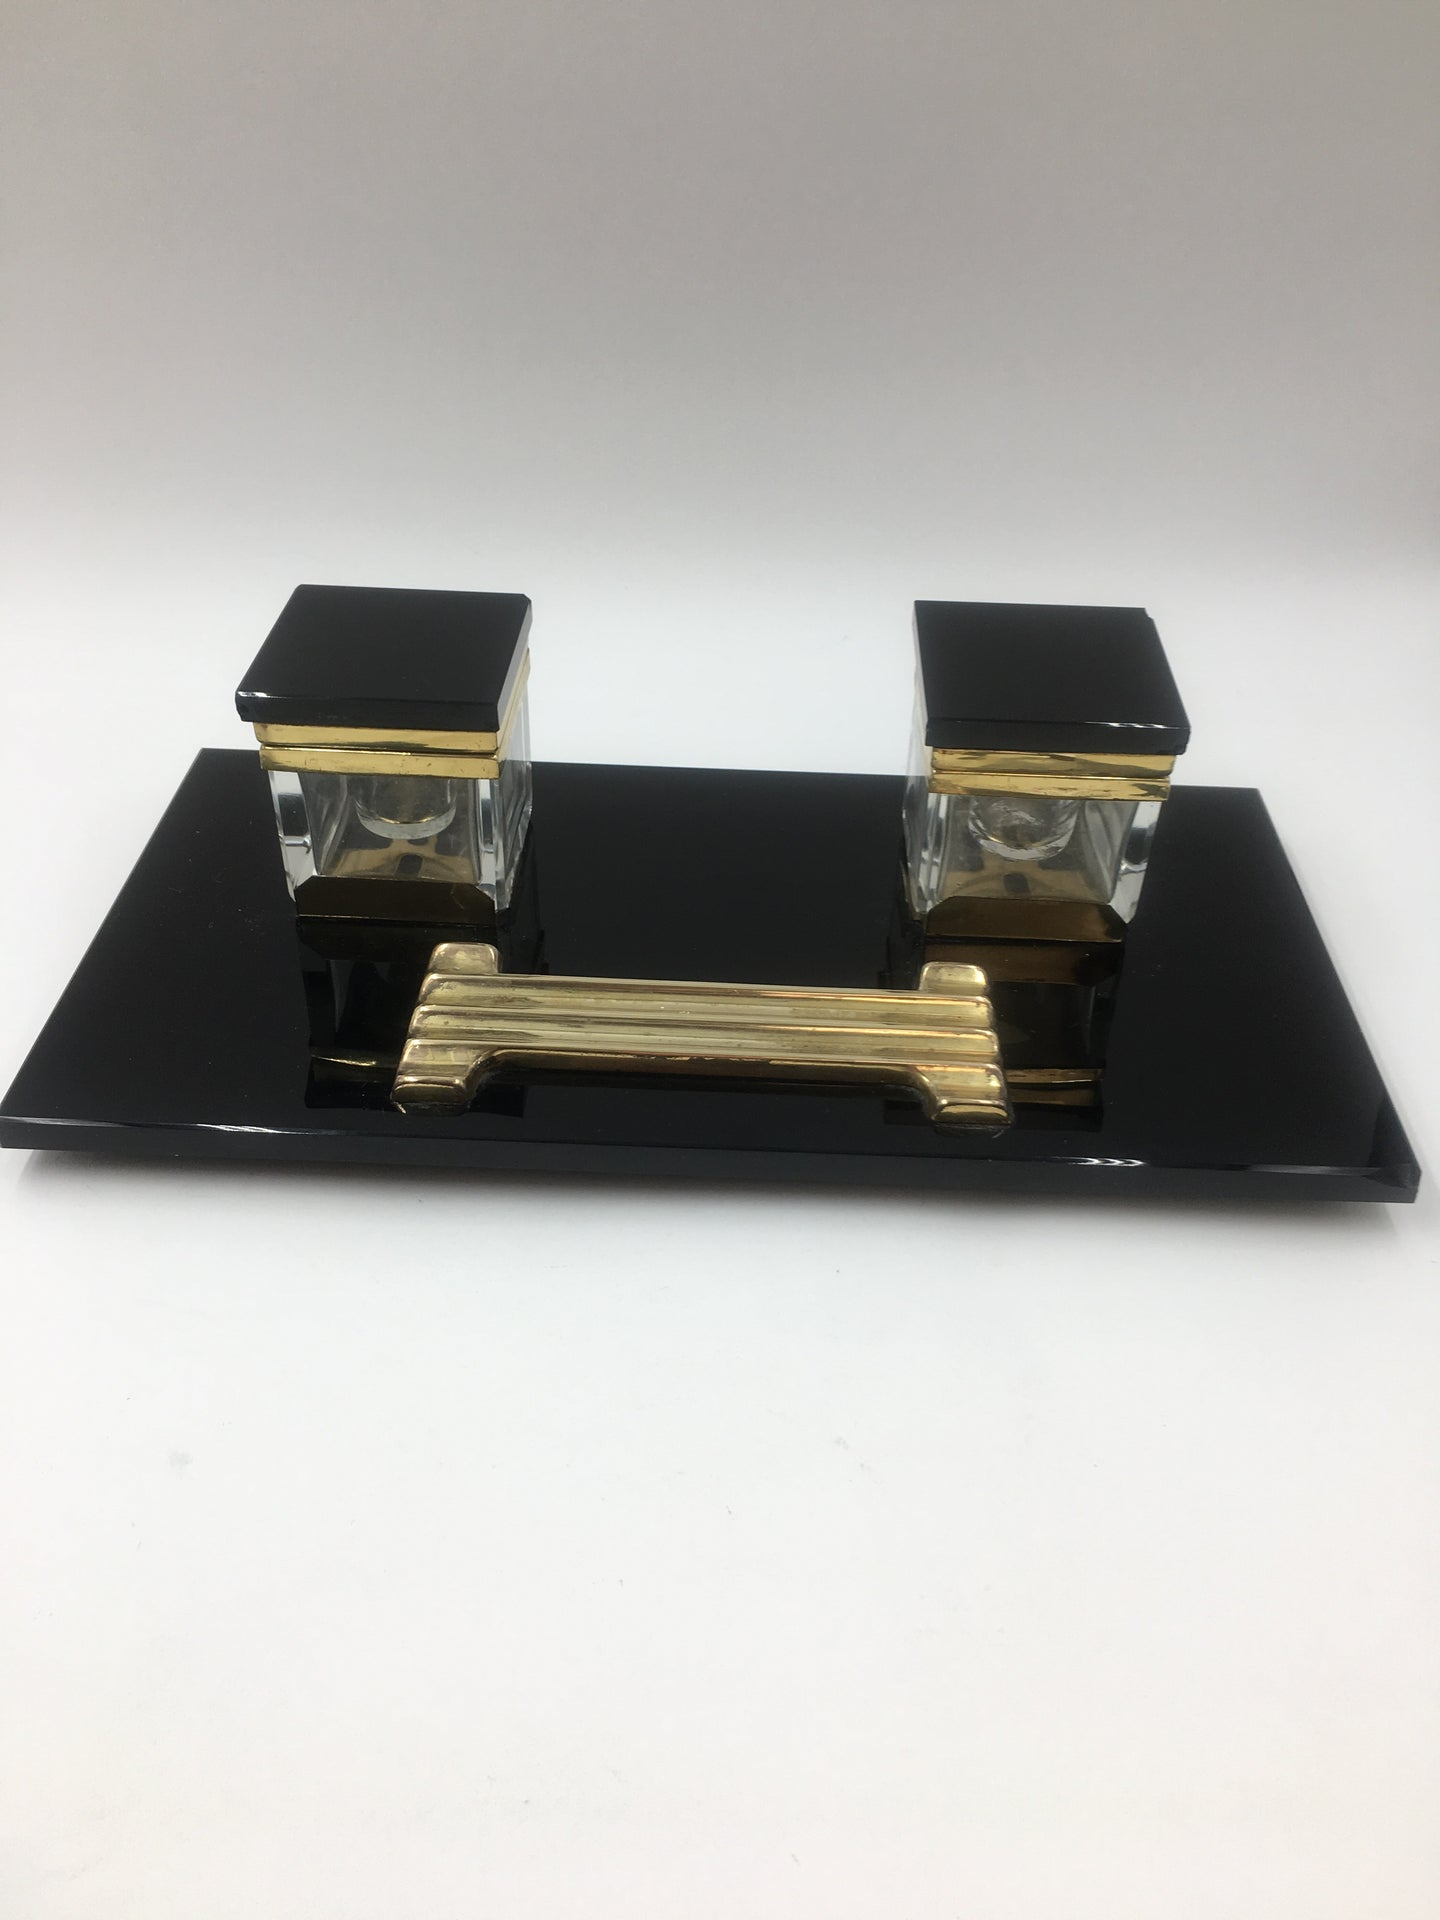 Art Deco Modernist Black Glass and Brass Desk Set